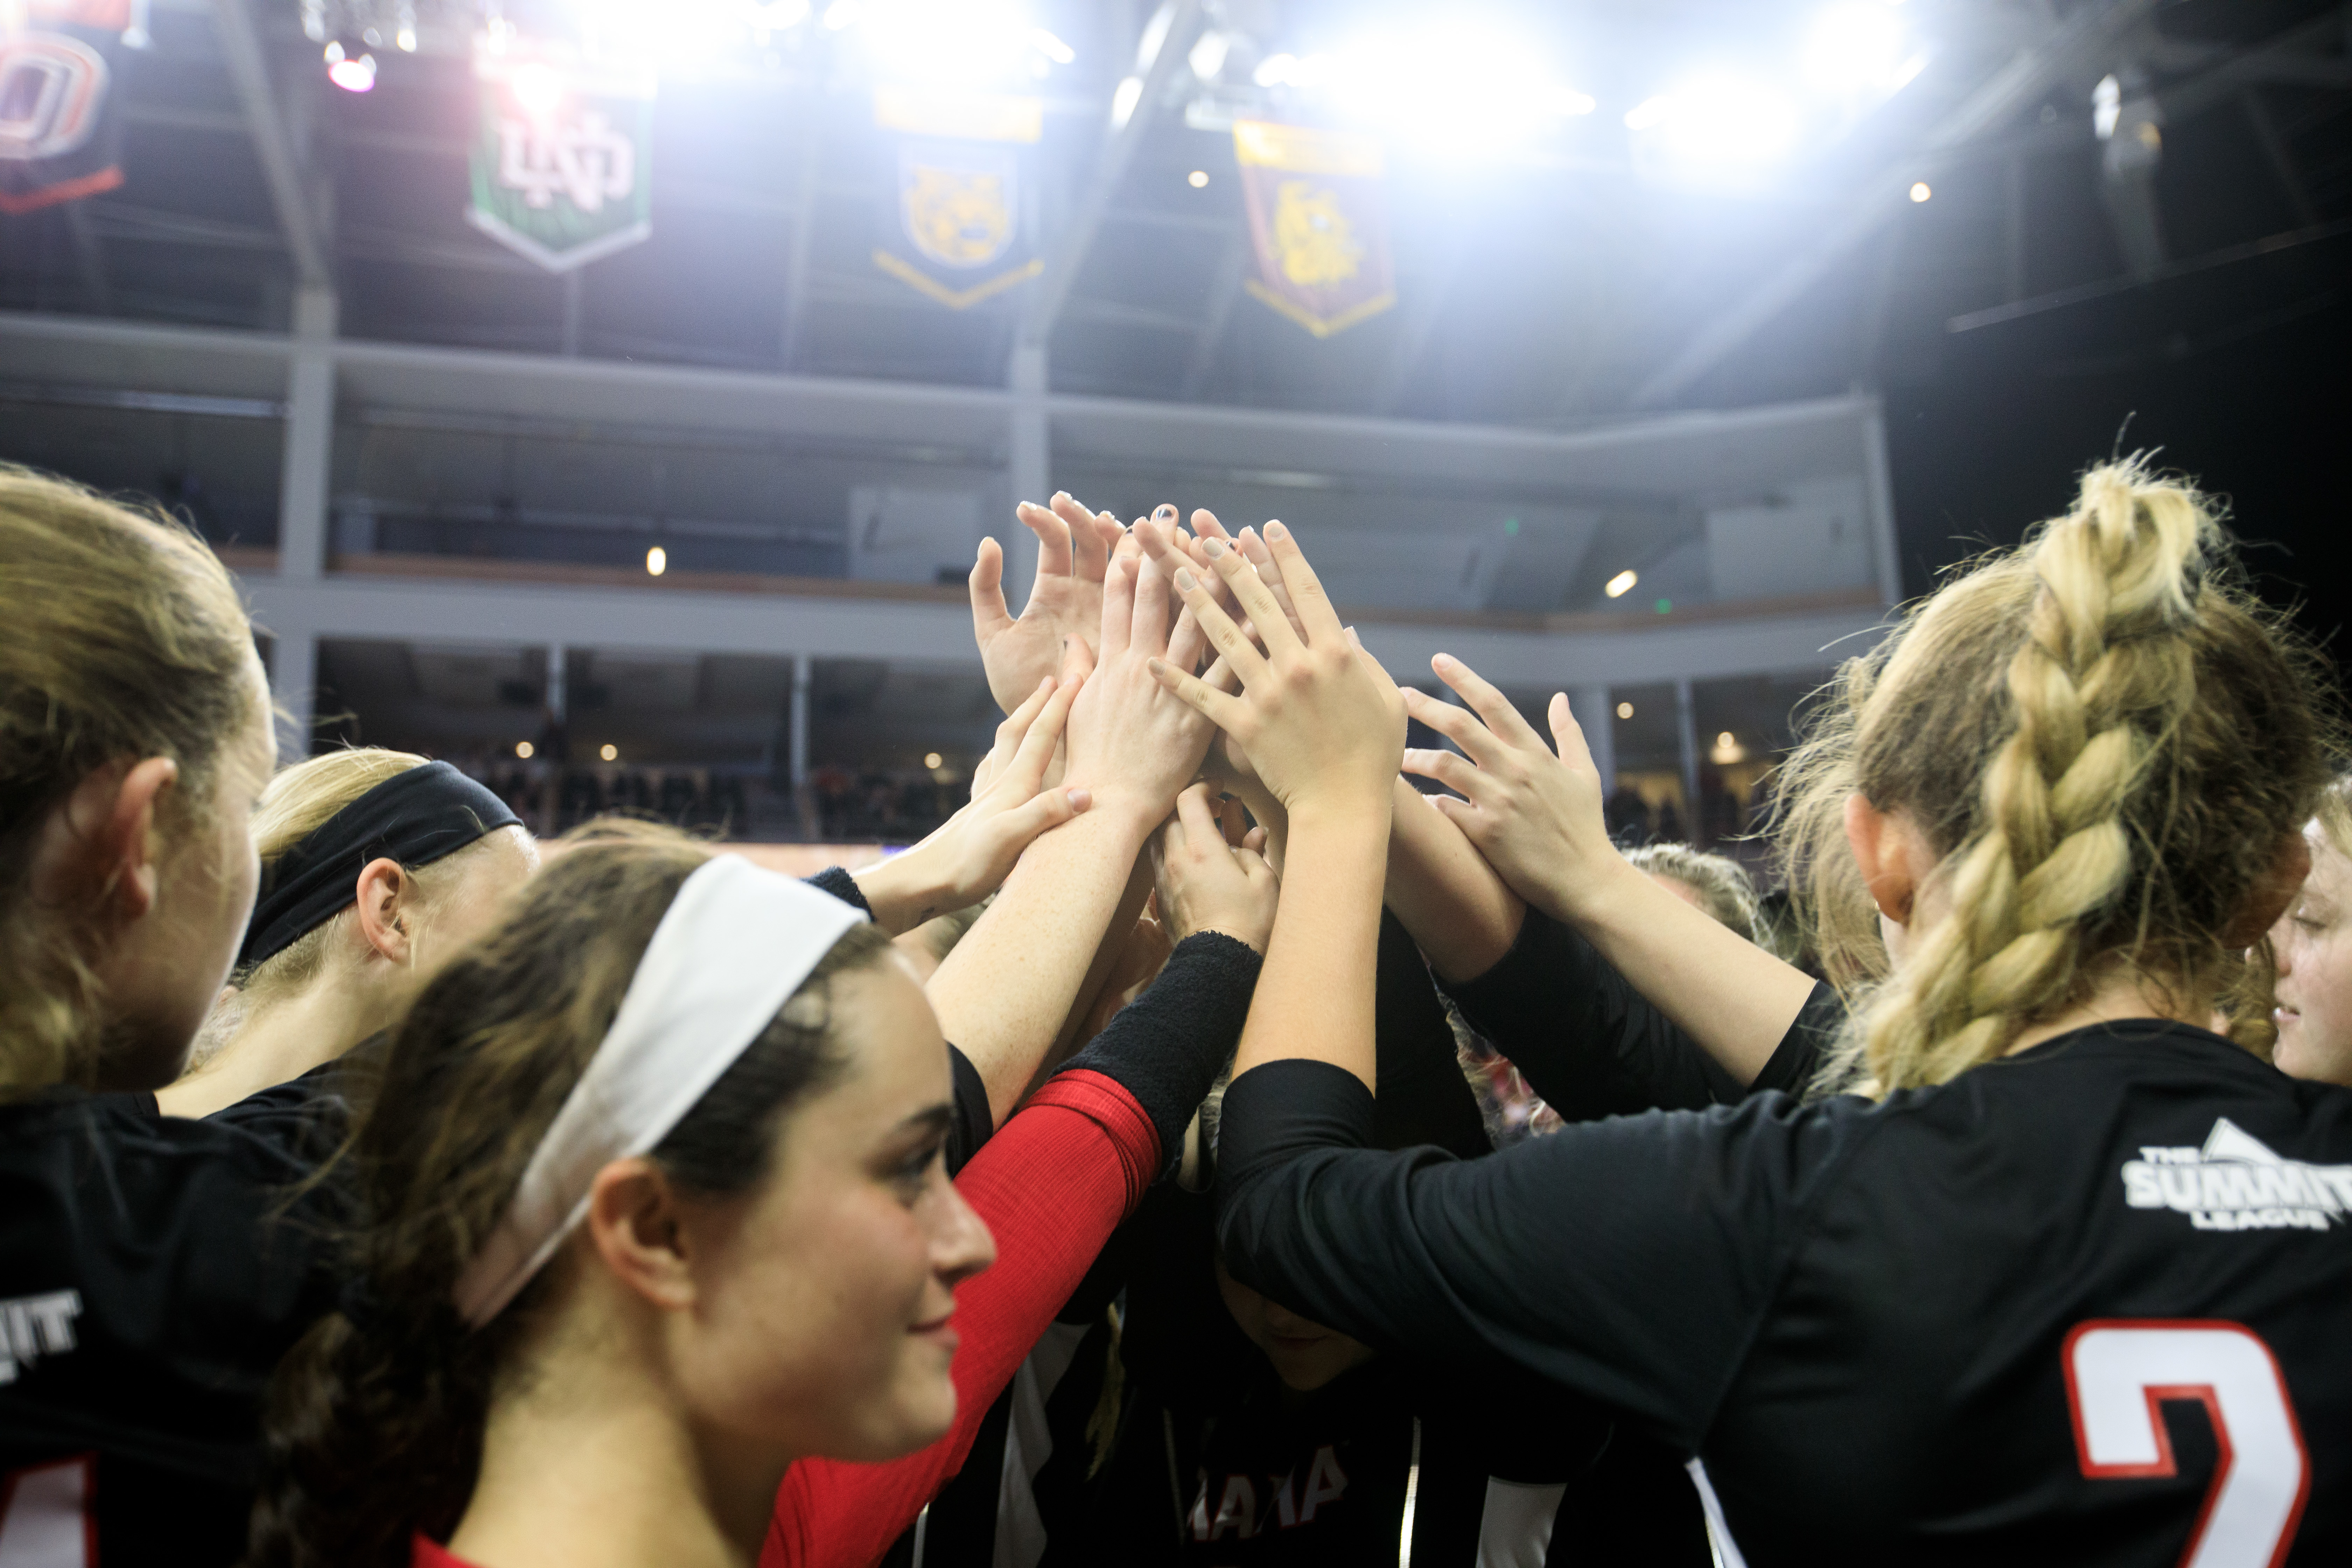 The Maverick volleyball team is in a huddle with their hands together.